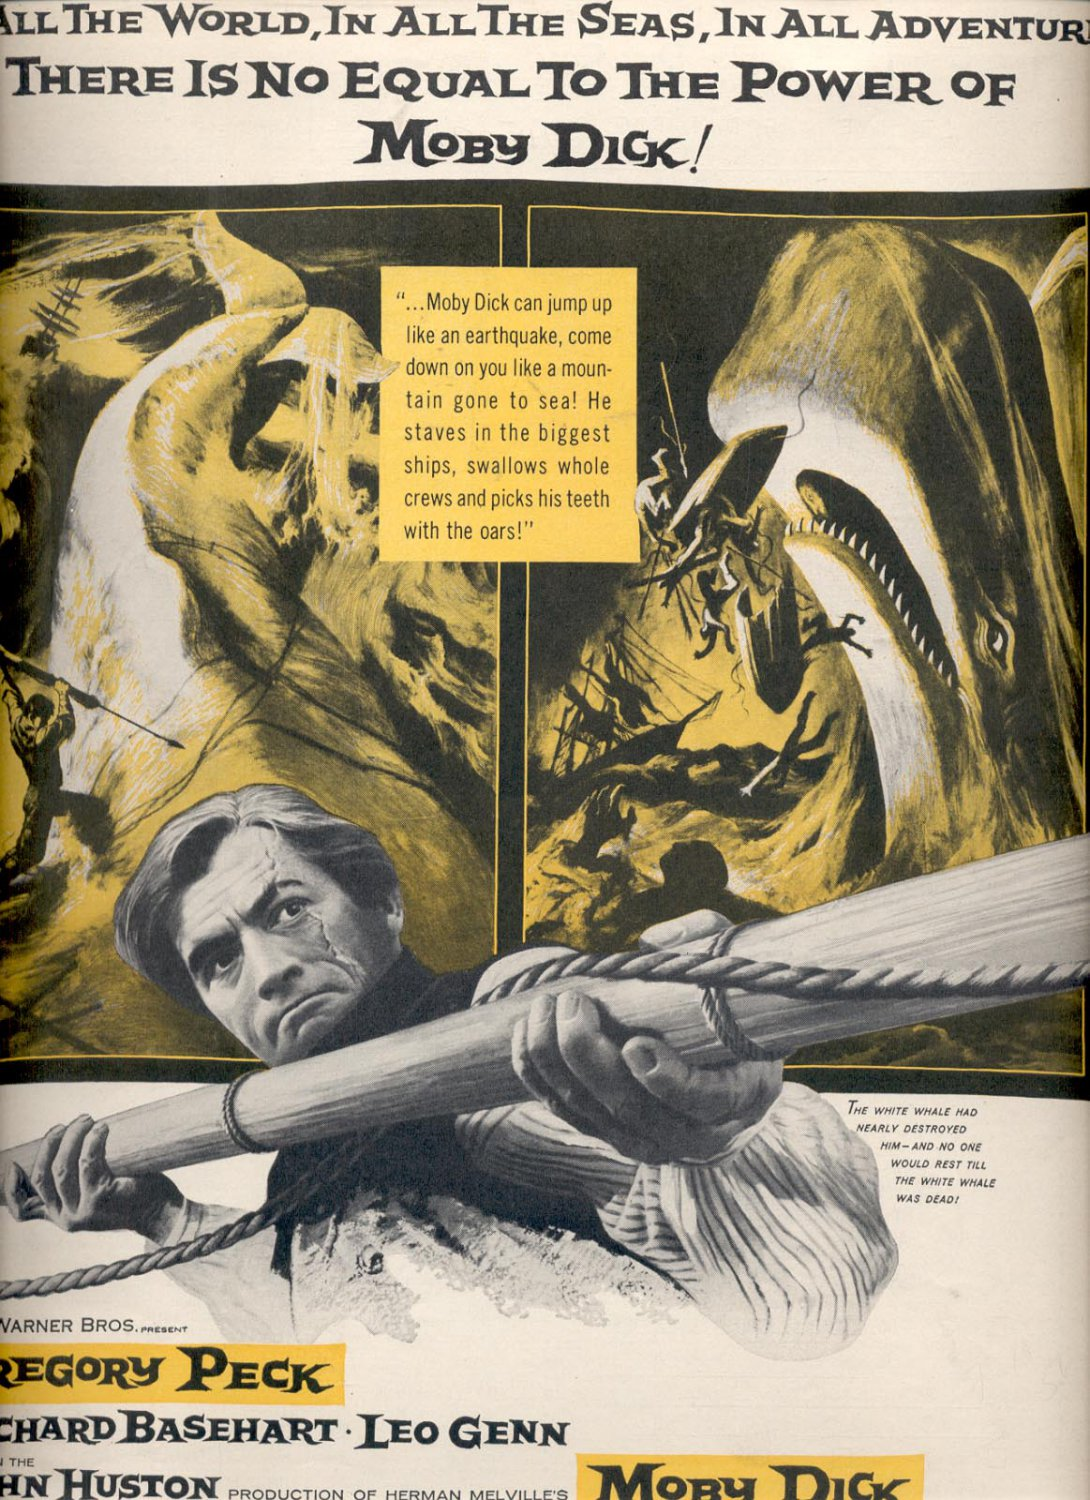 July 10, 1956 Moby Dick movie with Gregory Peck ad (# 3716)